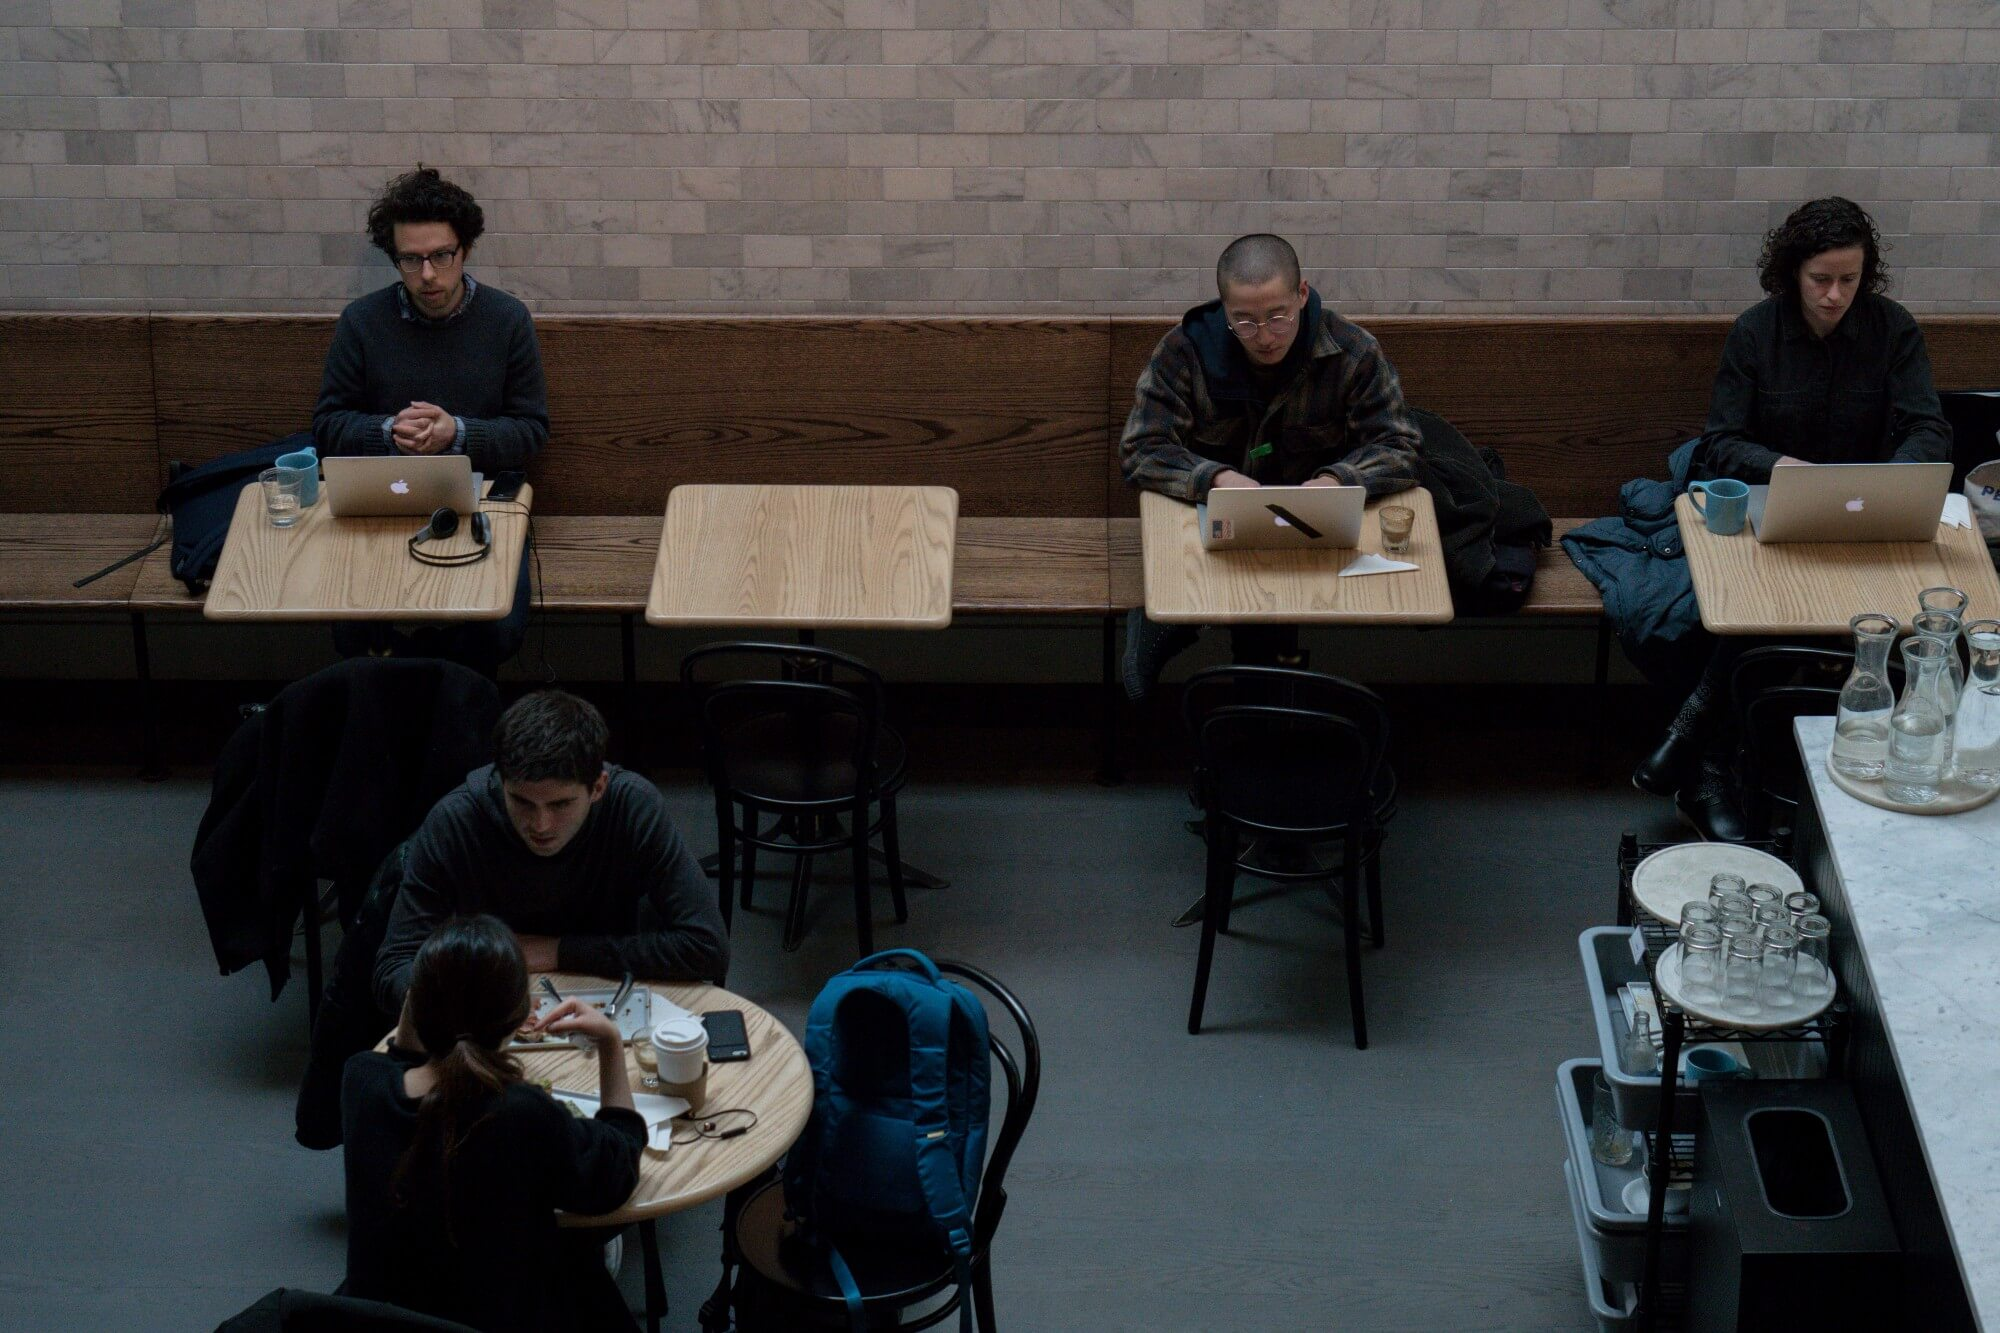 Group of individuals sitting at different tables in a coffee shop working